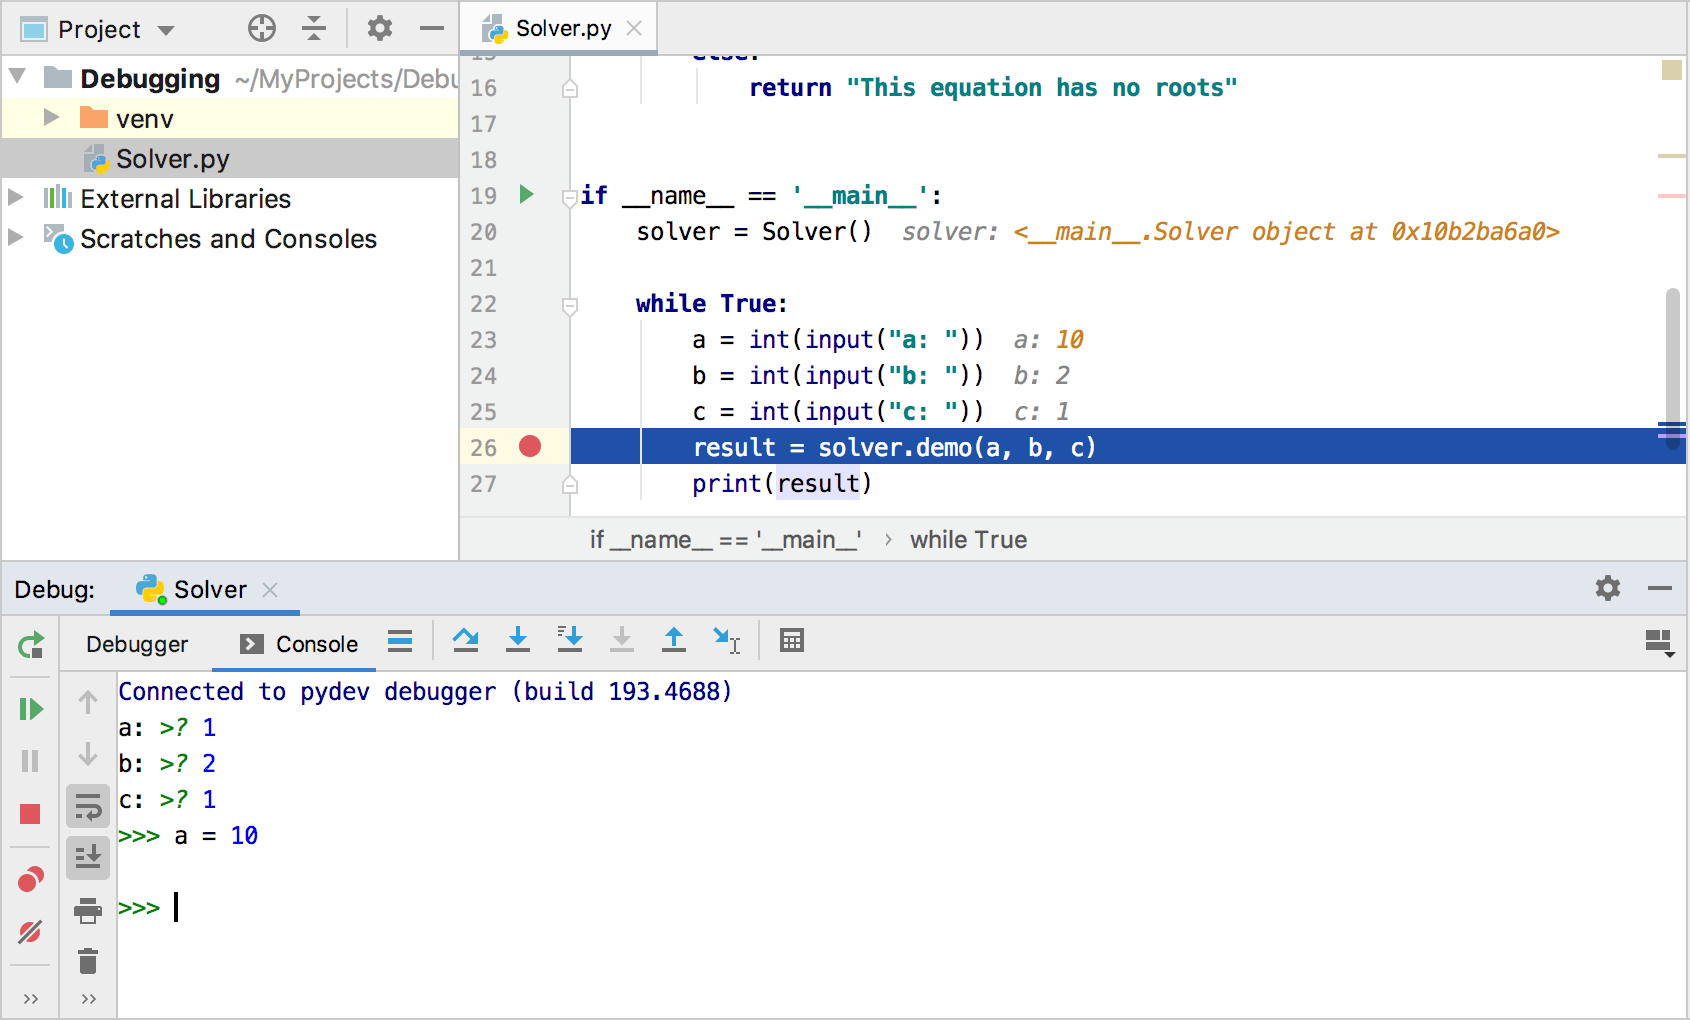 Debugging using the prompt console